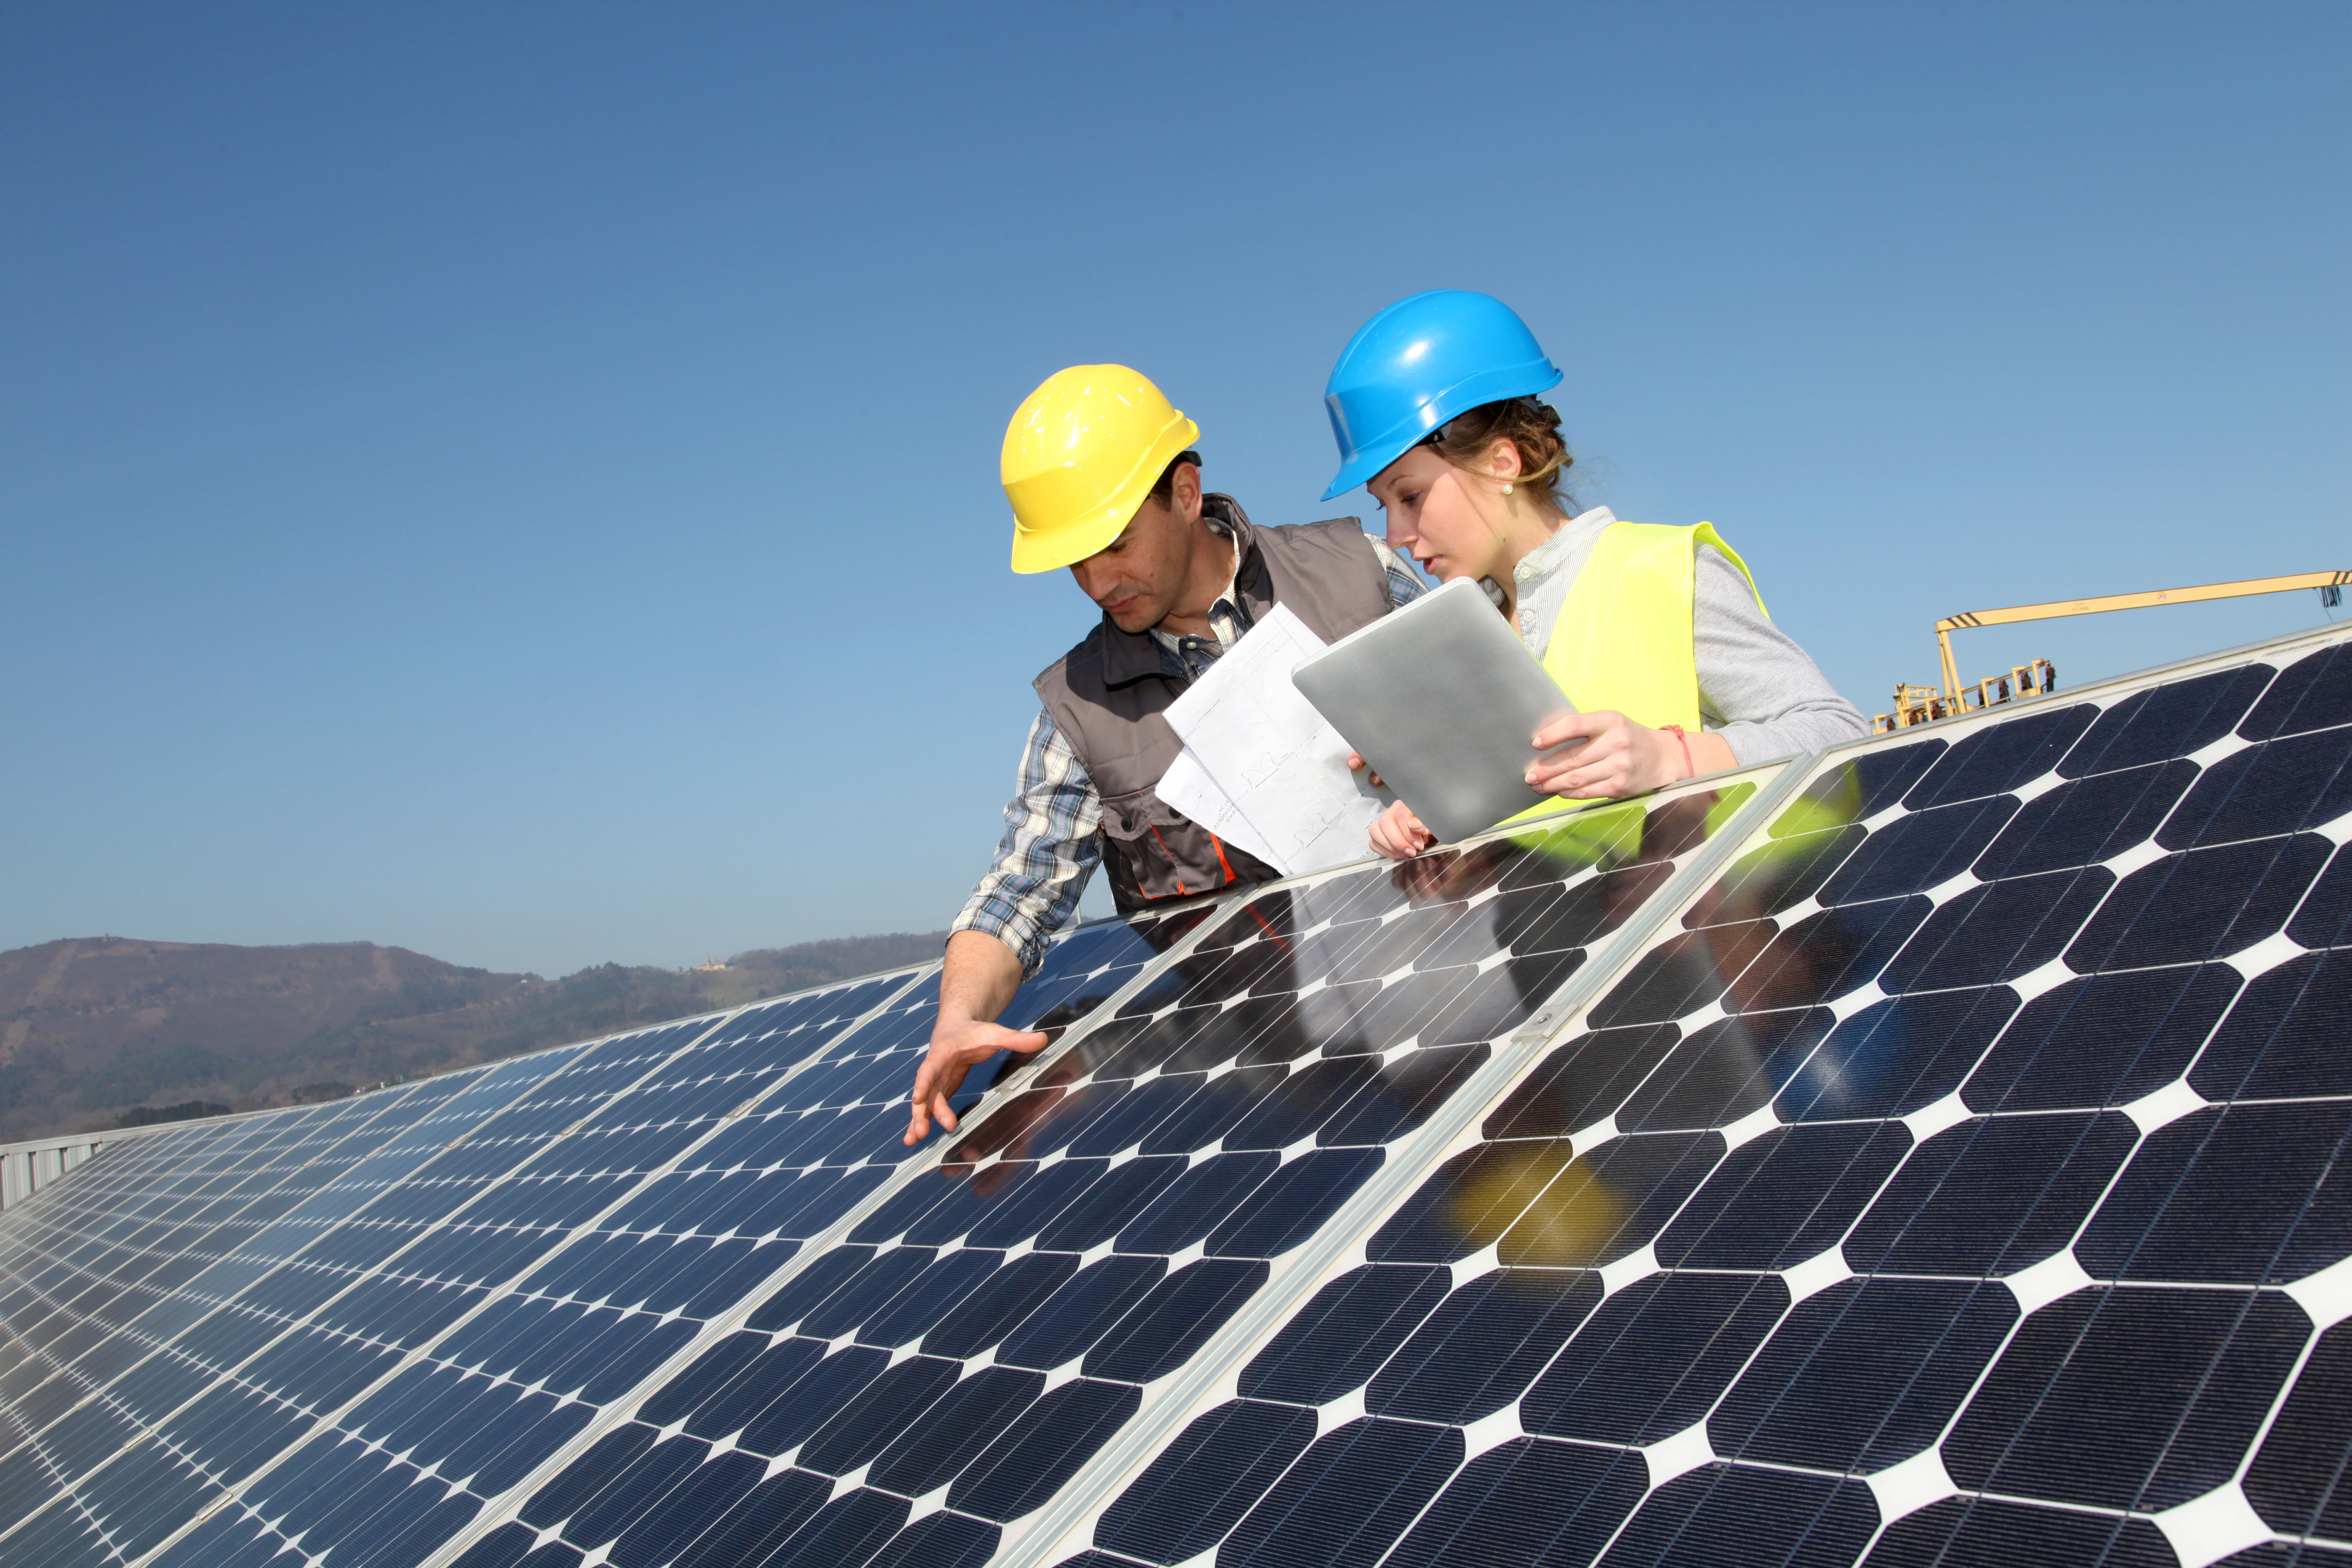 Engineers working on solar panels